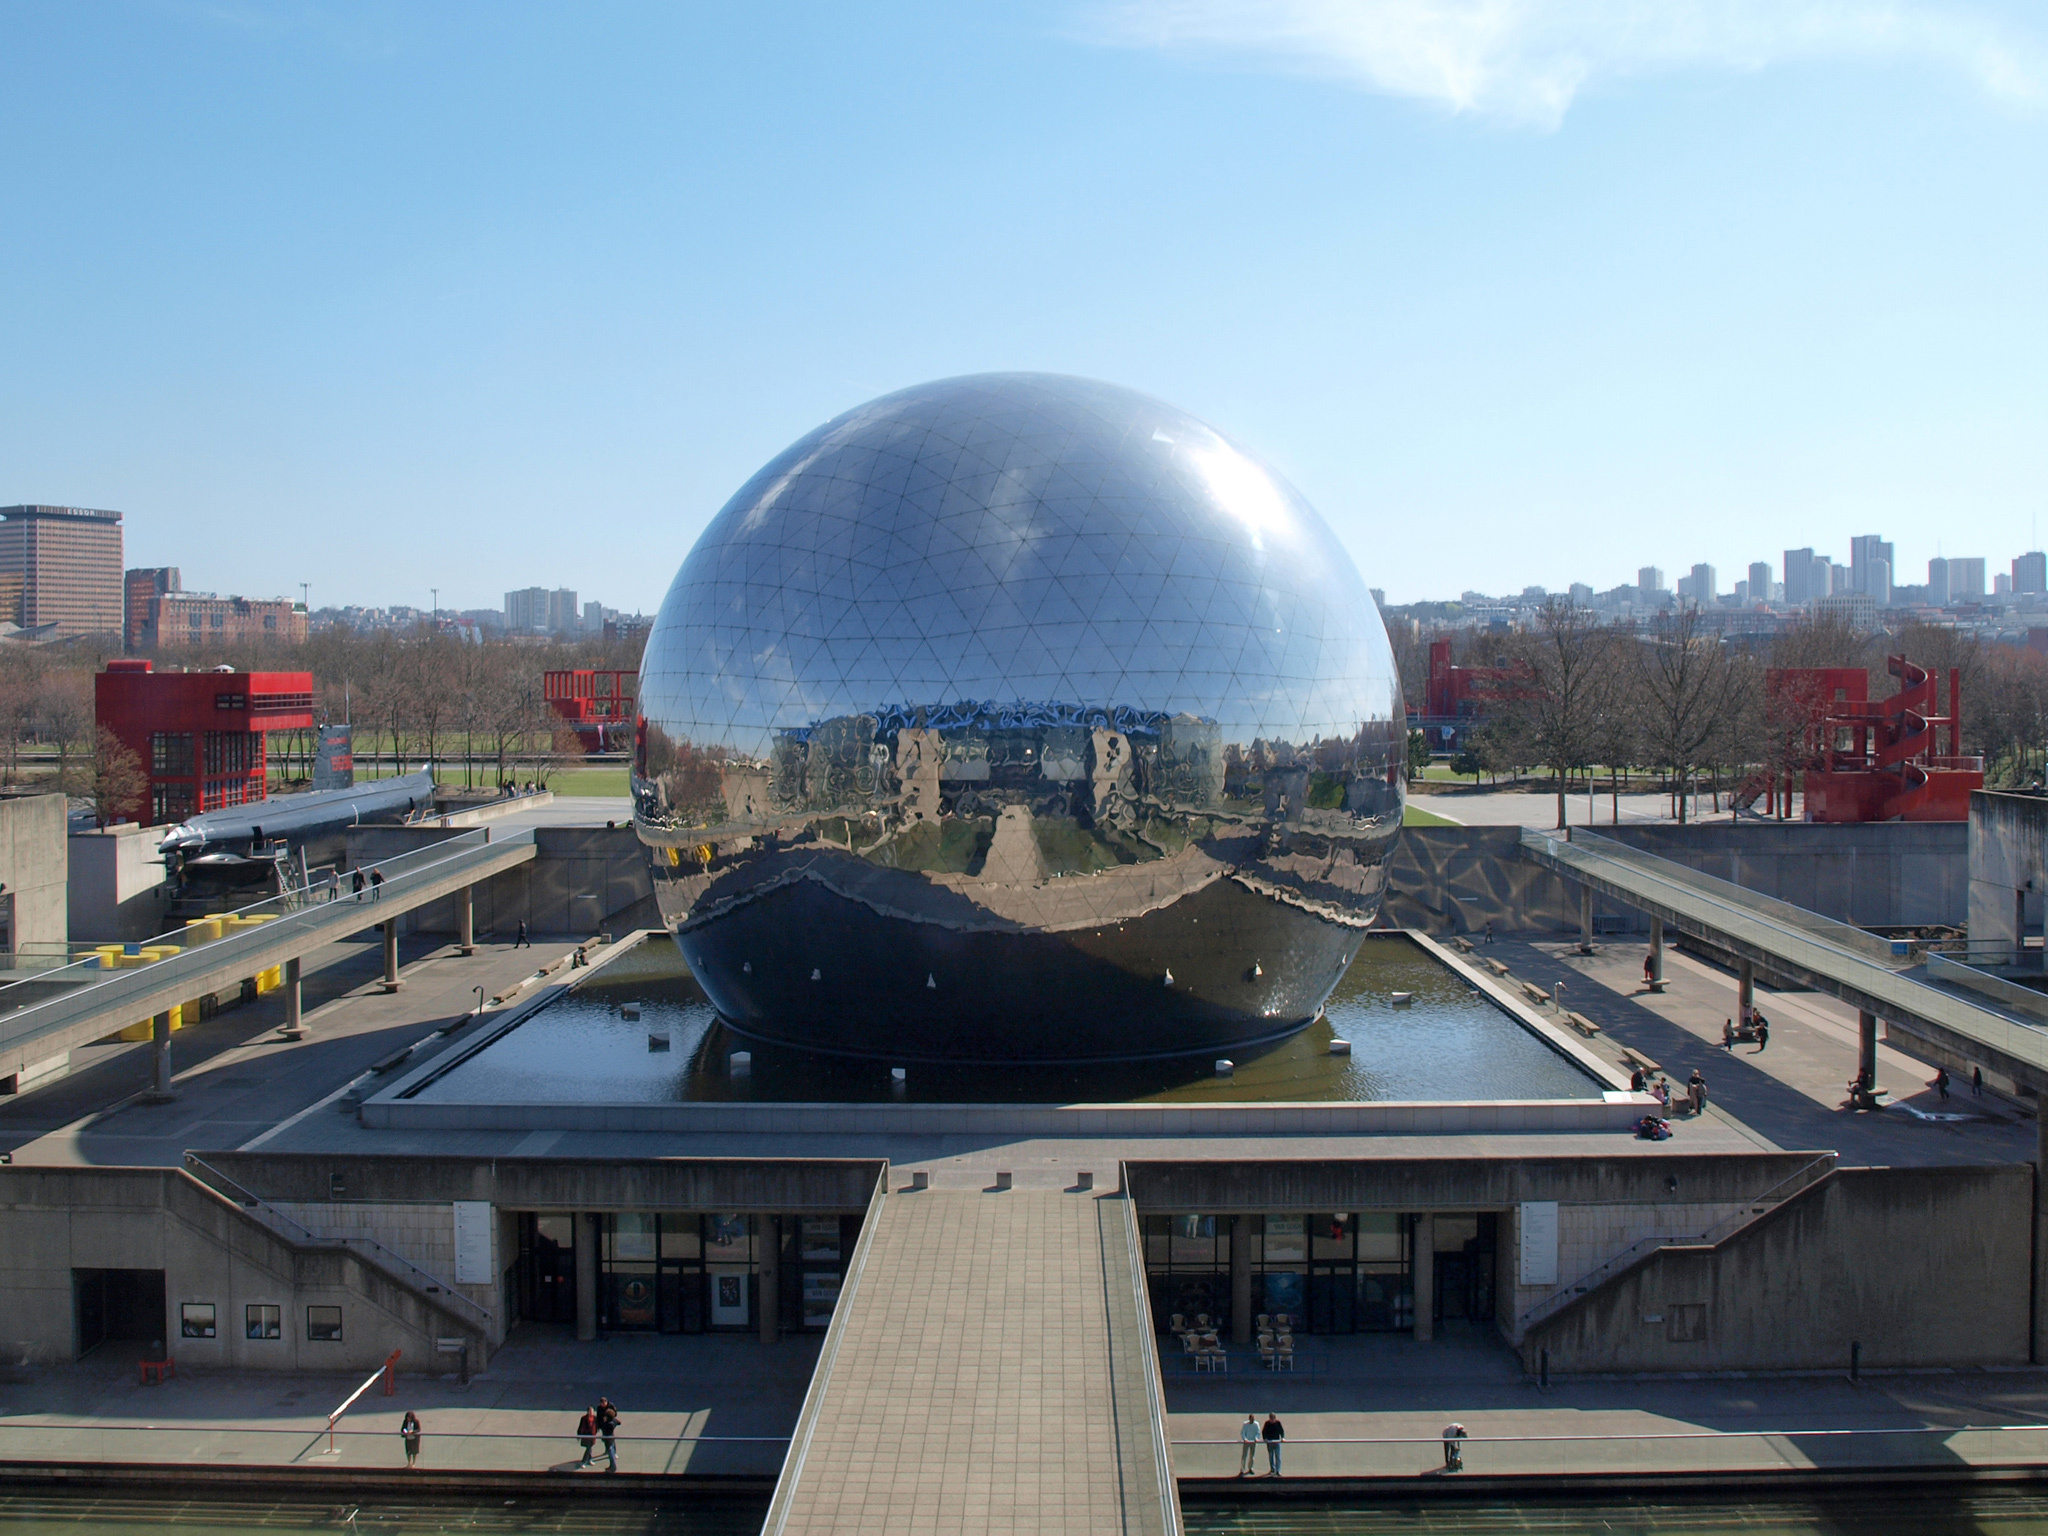 Cité des Sciences et de l'Industrie in Parc de la Villette in Paris